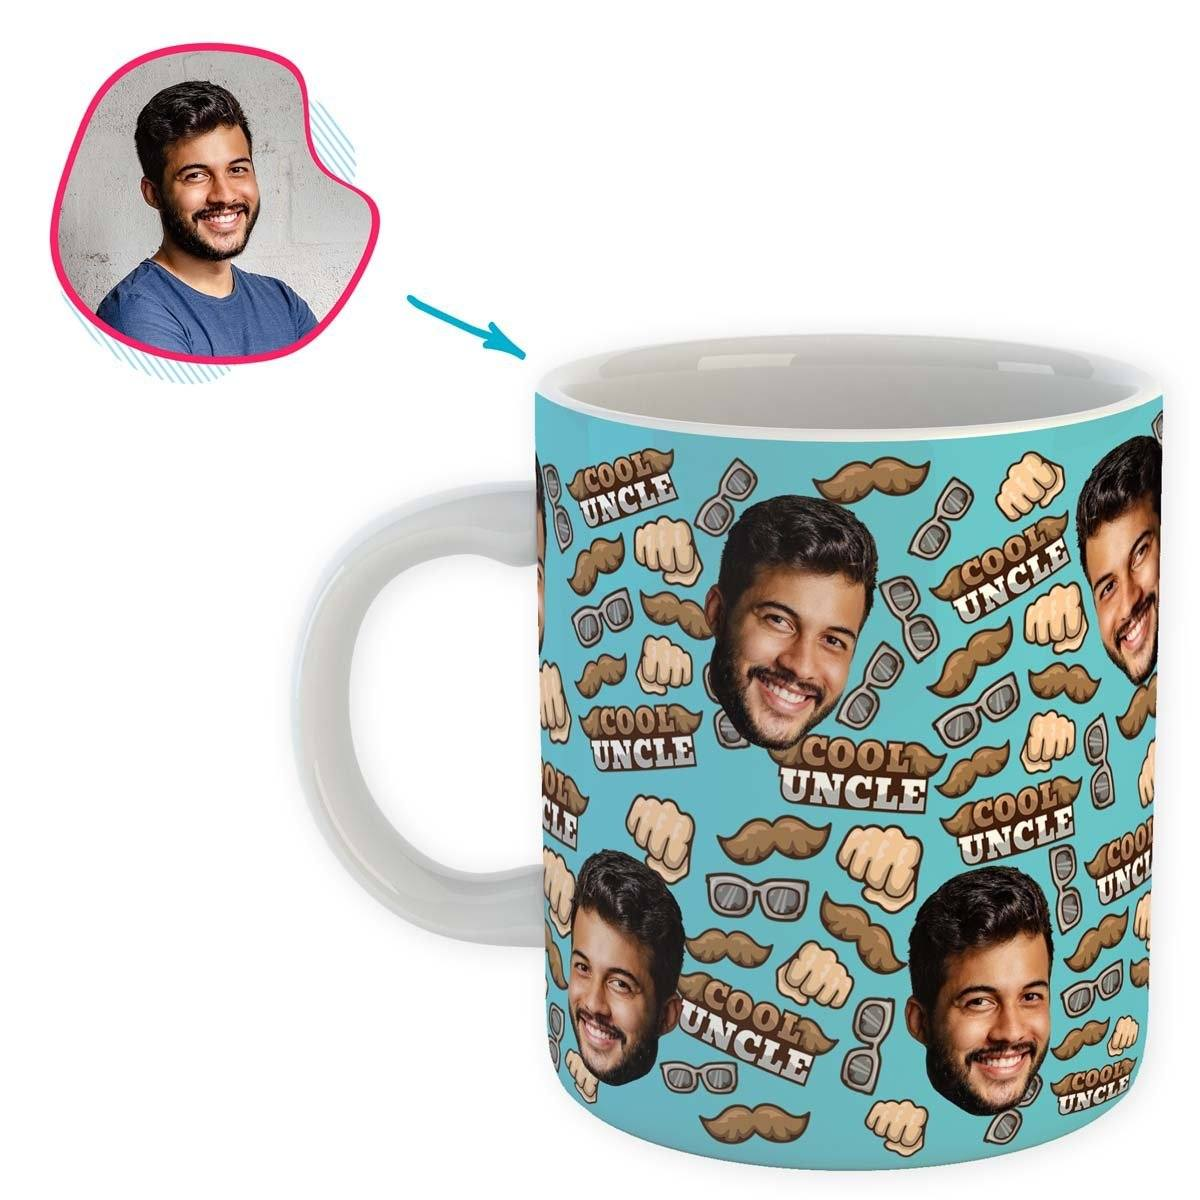 Blue Uncle personalized mug with photo of face printed on it